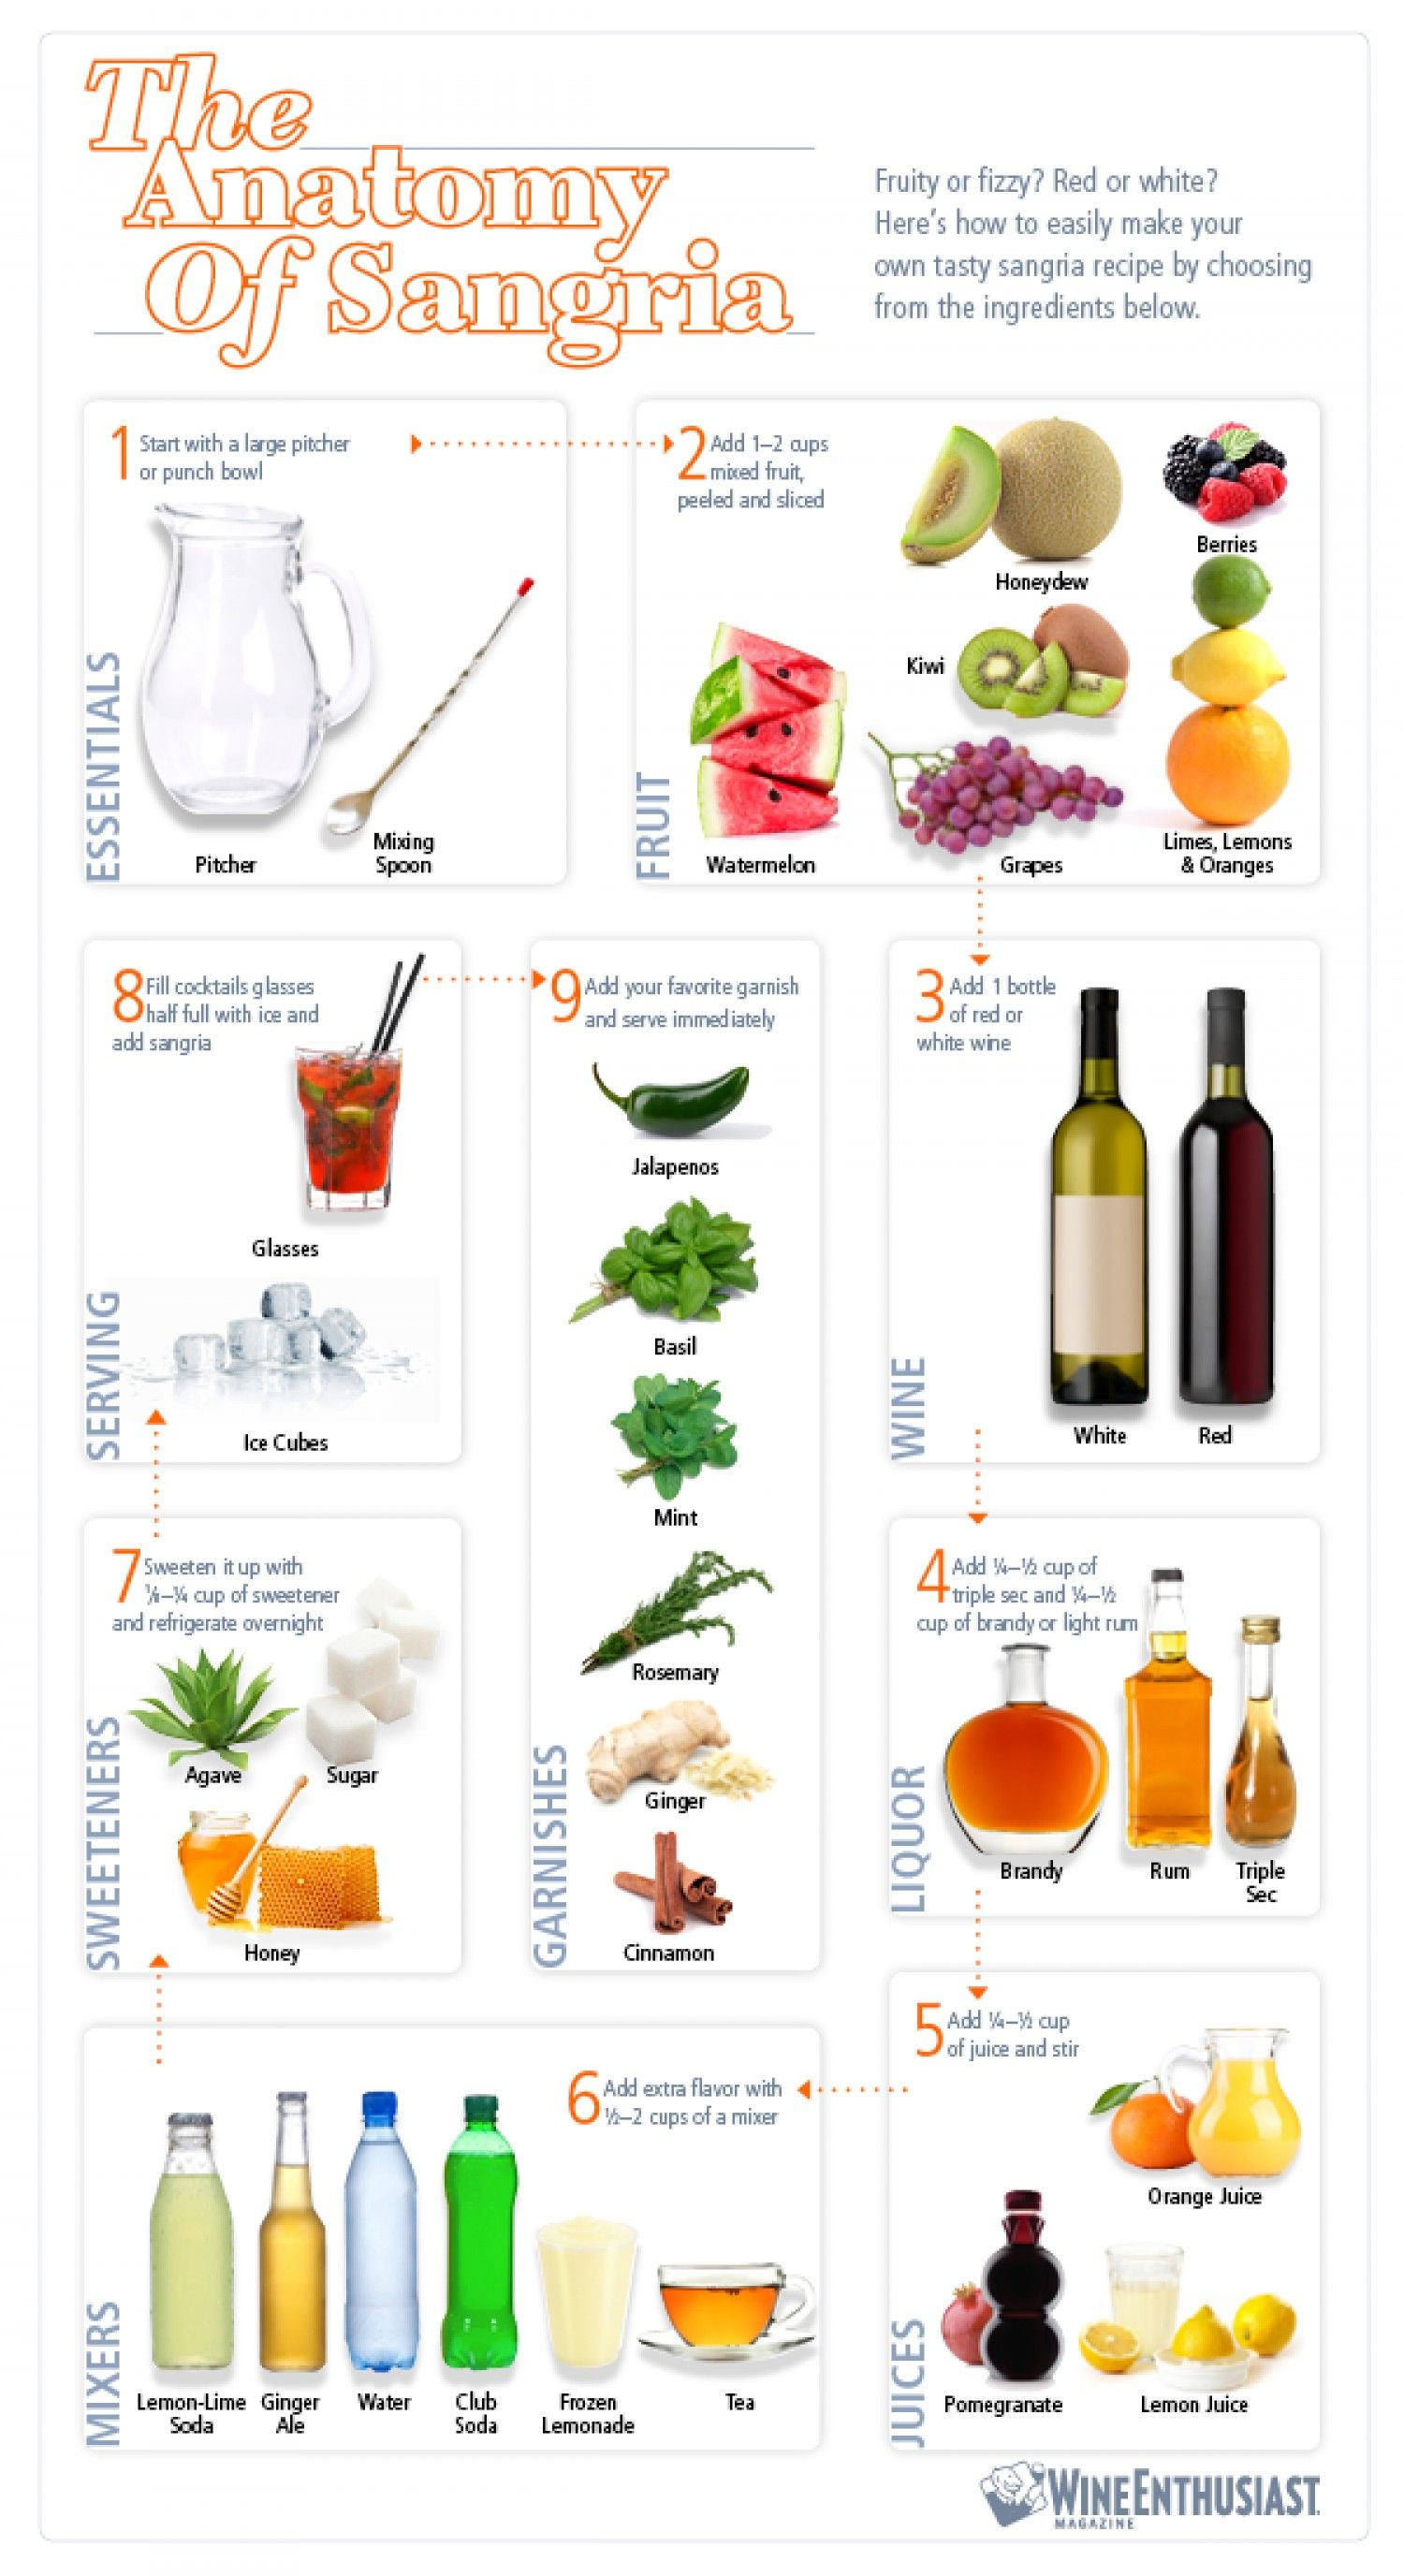 The Anatomy of Sangria by wineenthusiast via visual.ly #Infographic ...